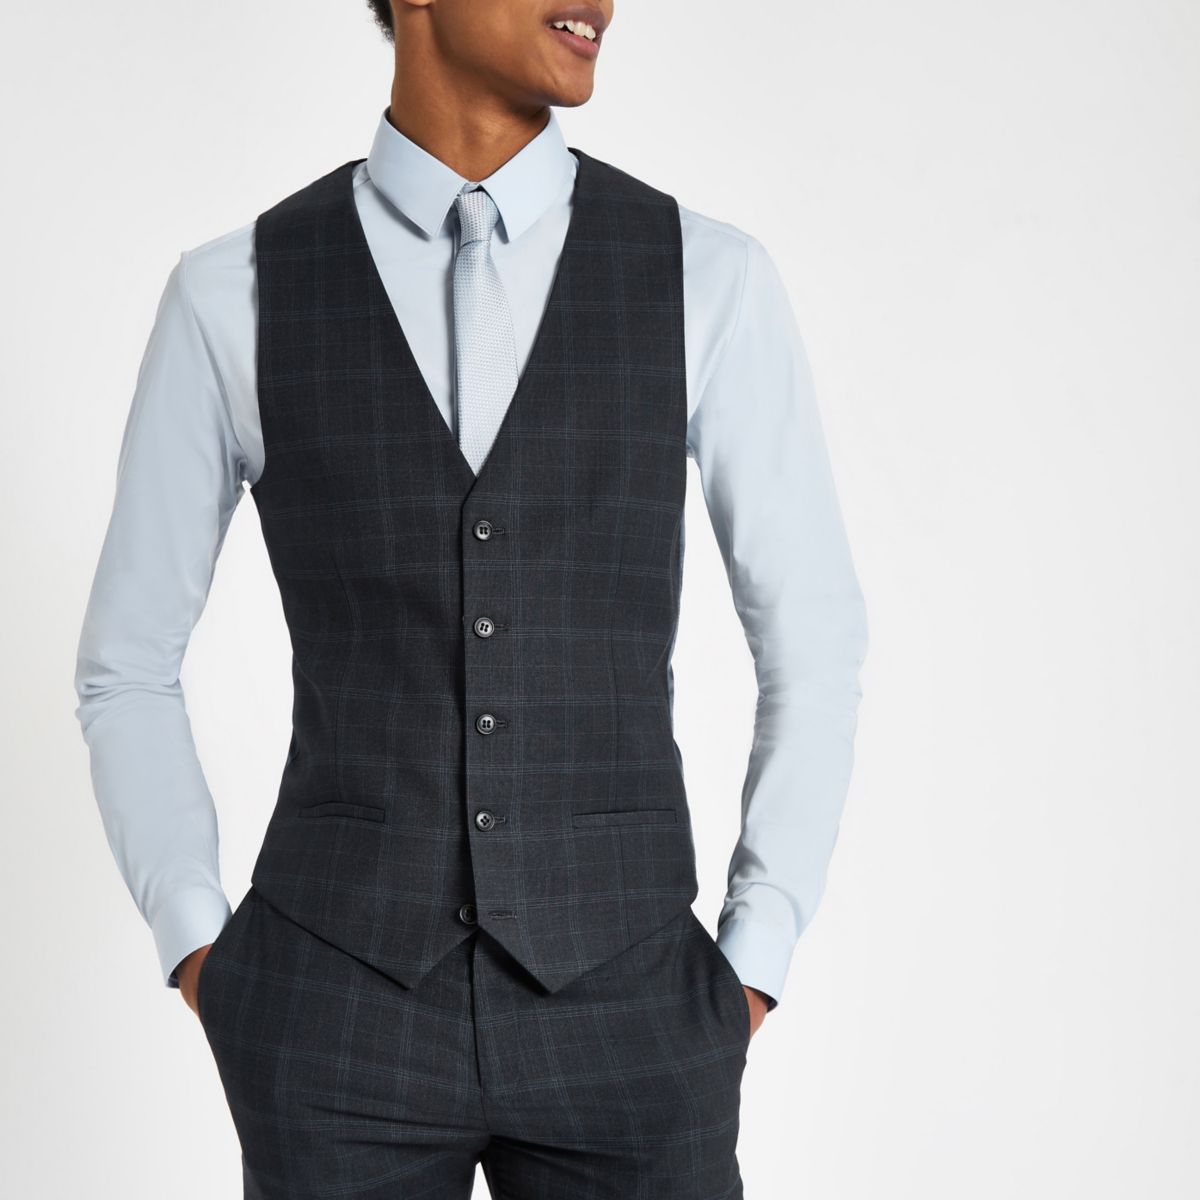 Navy check print suit vest